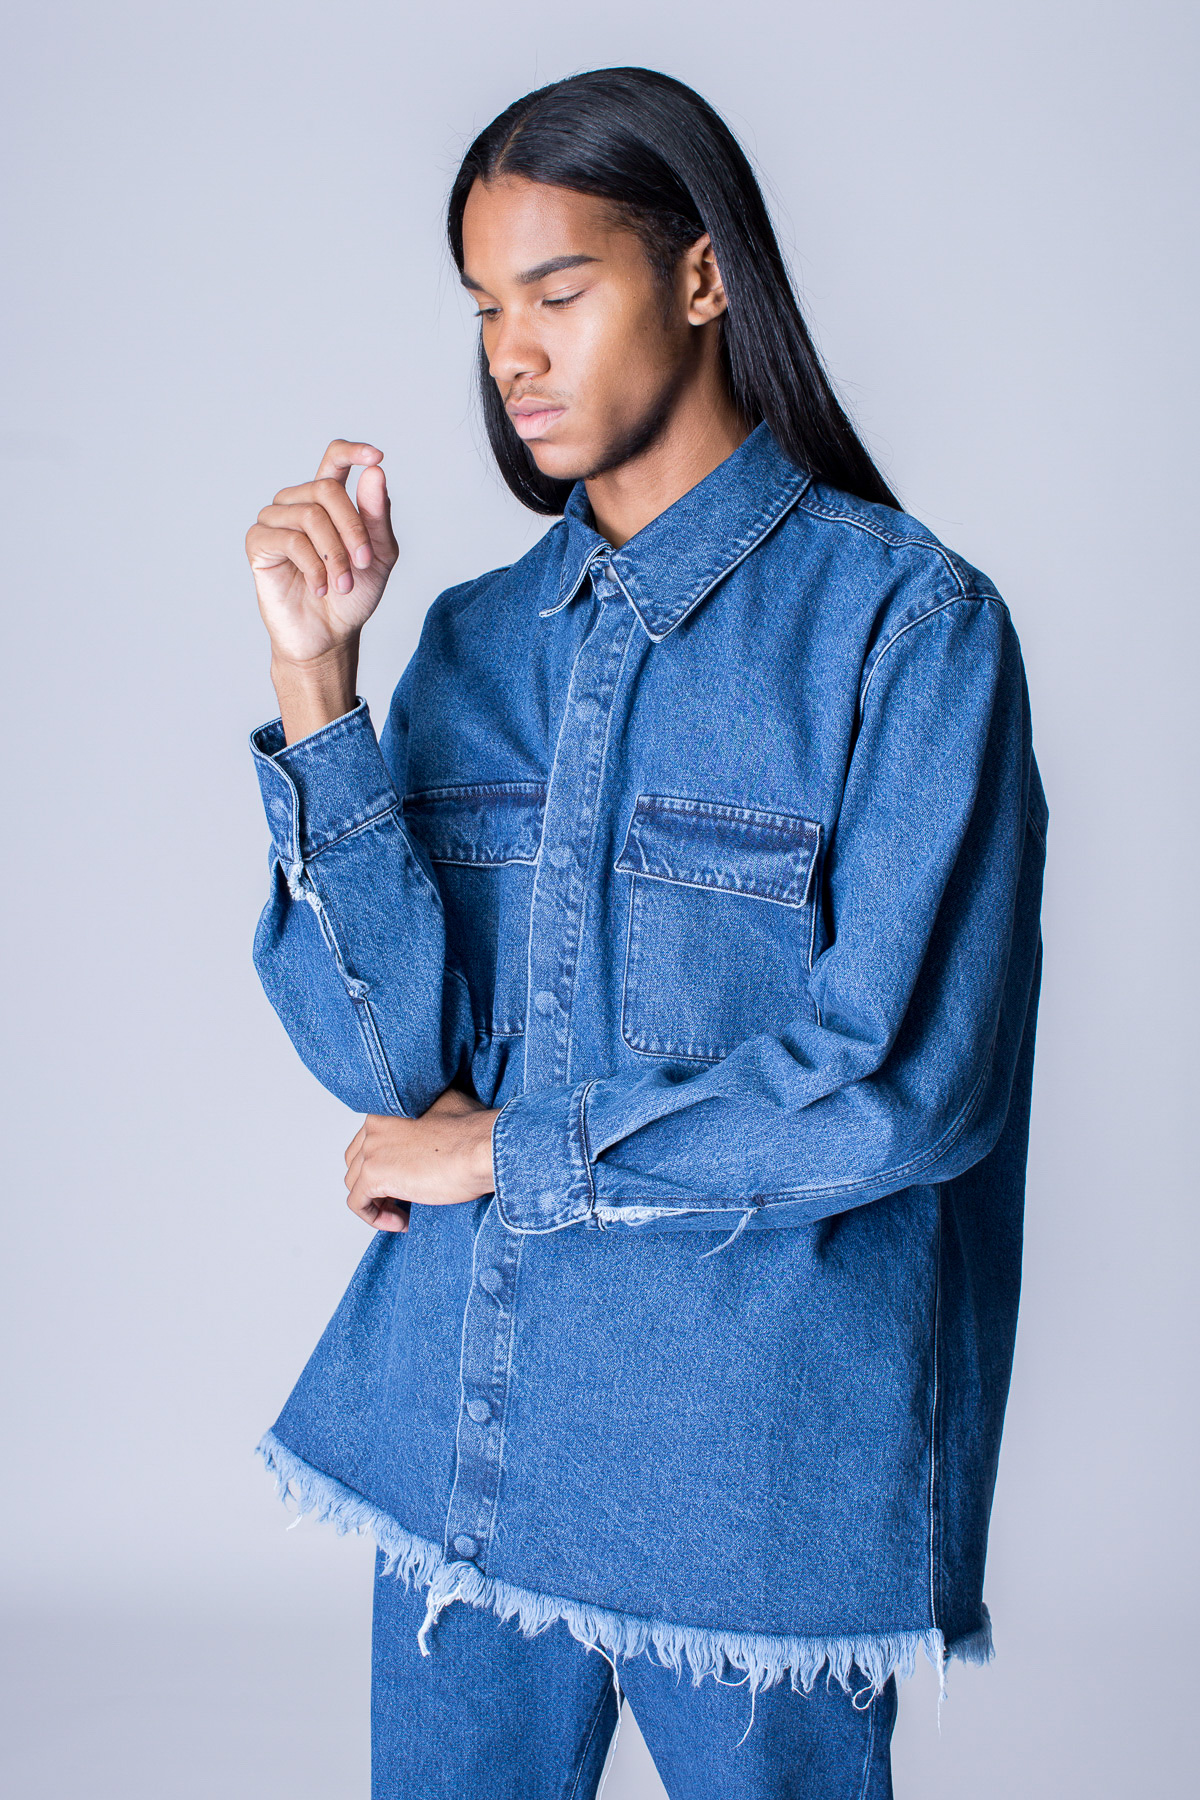 Marques'almeida denim pocket overshirt